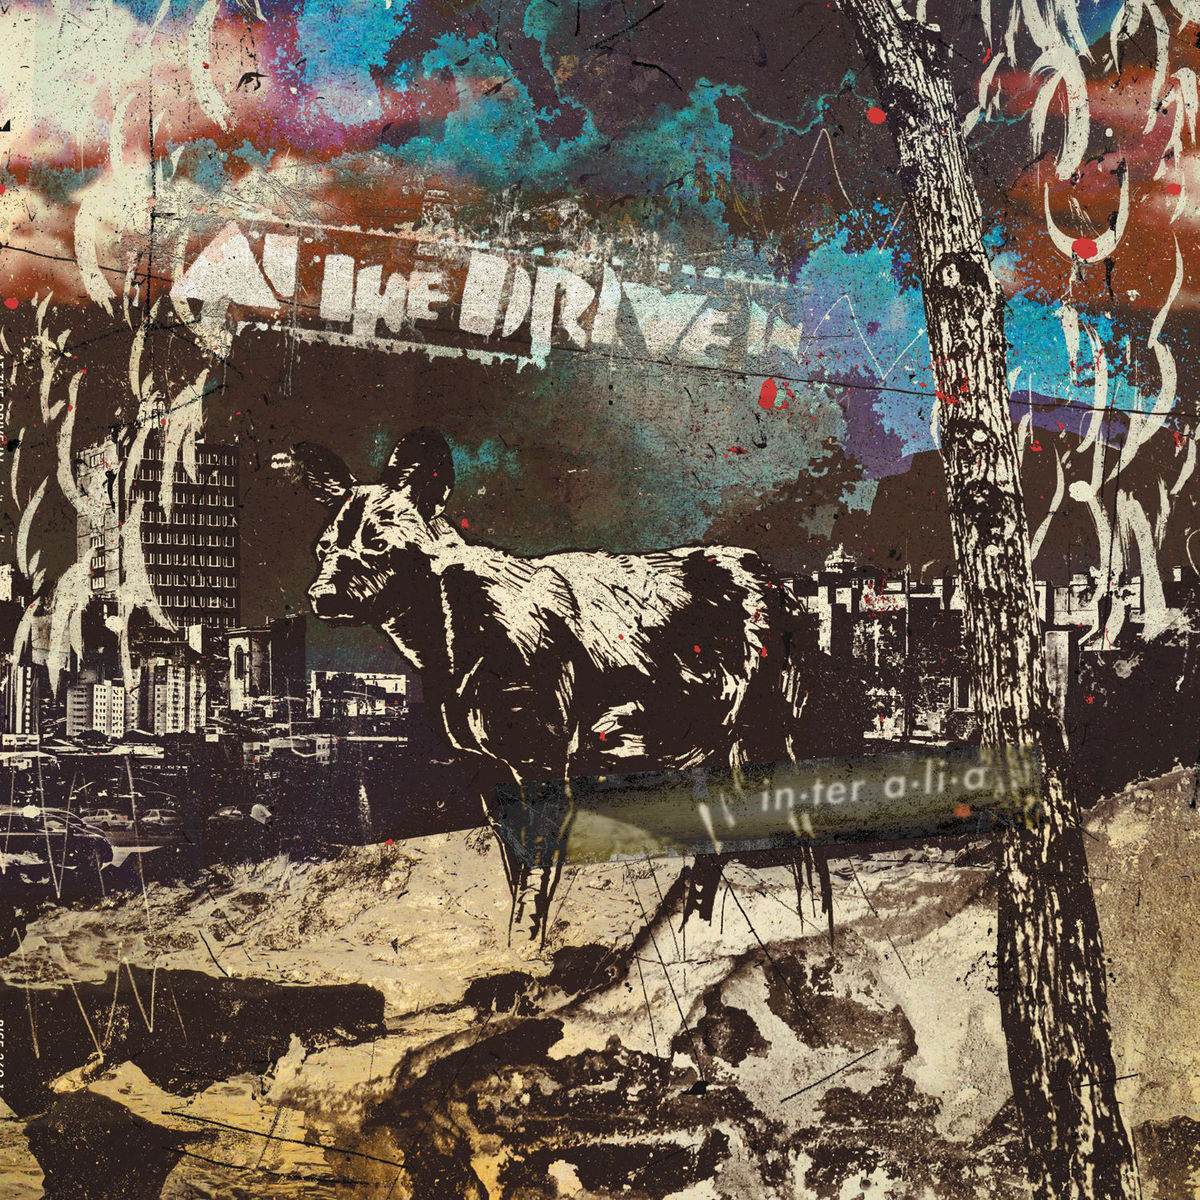 at the drive in At The Drive In release their first album in 17 years, in • ter a • li • a: Stream/Download